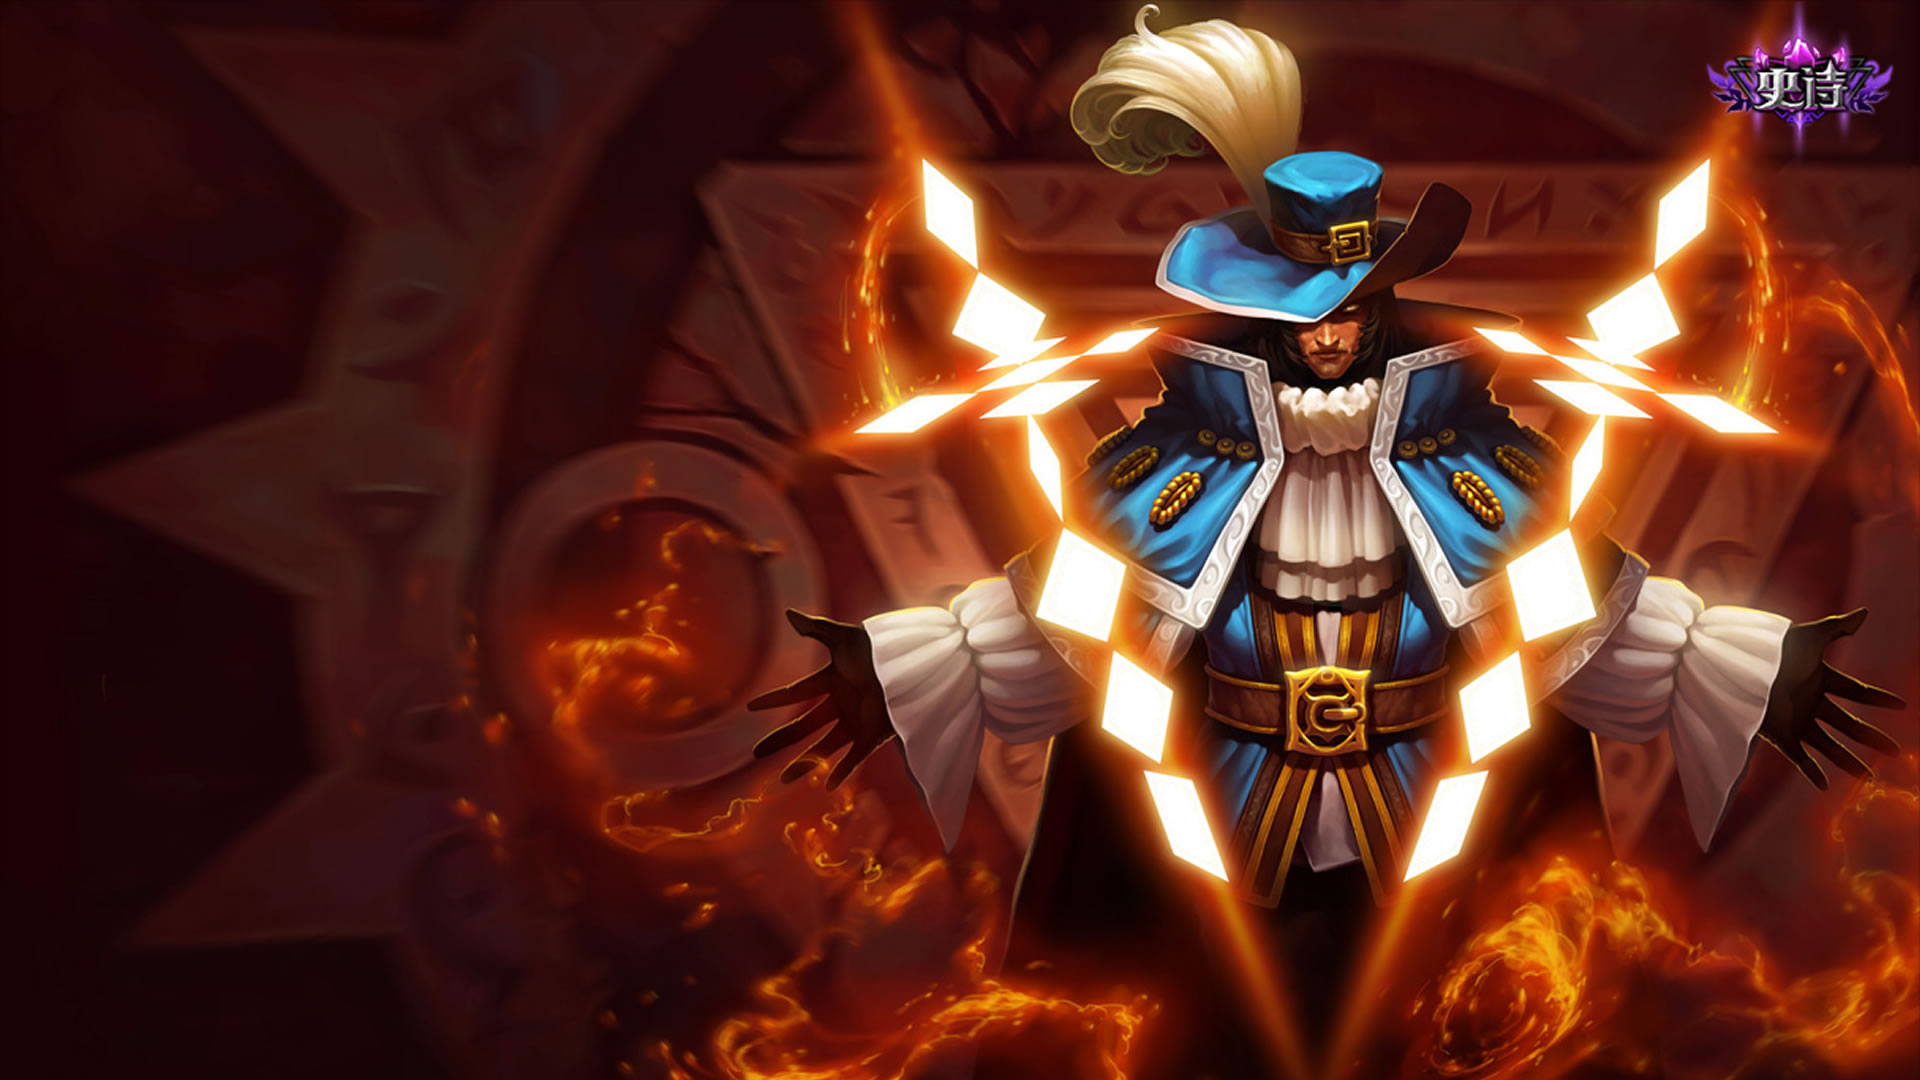 Musketeer twisted fate chinese wallpaper leaguesplash musketeer twisted fate chinese voltagebd Images